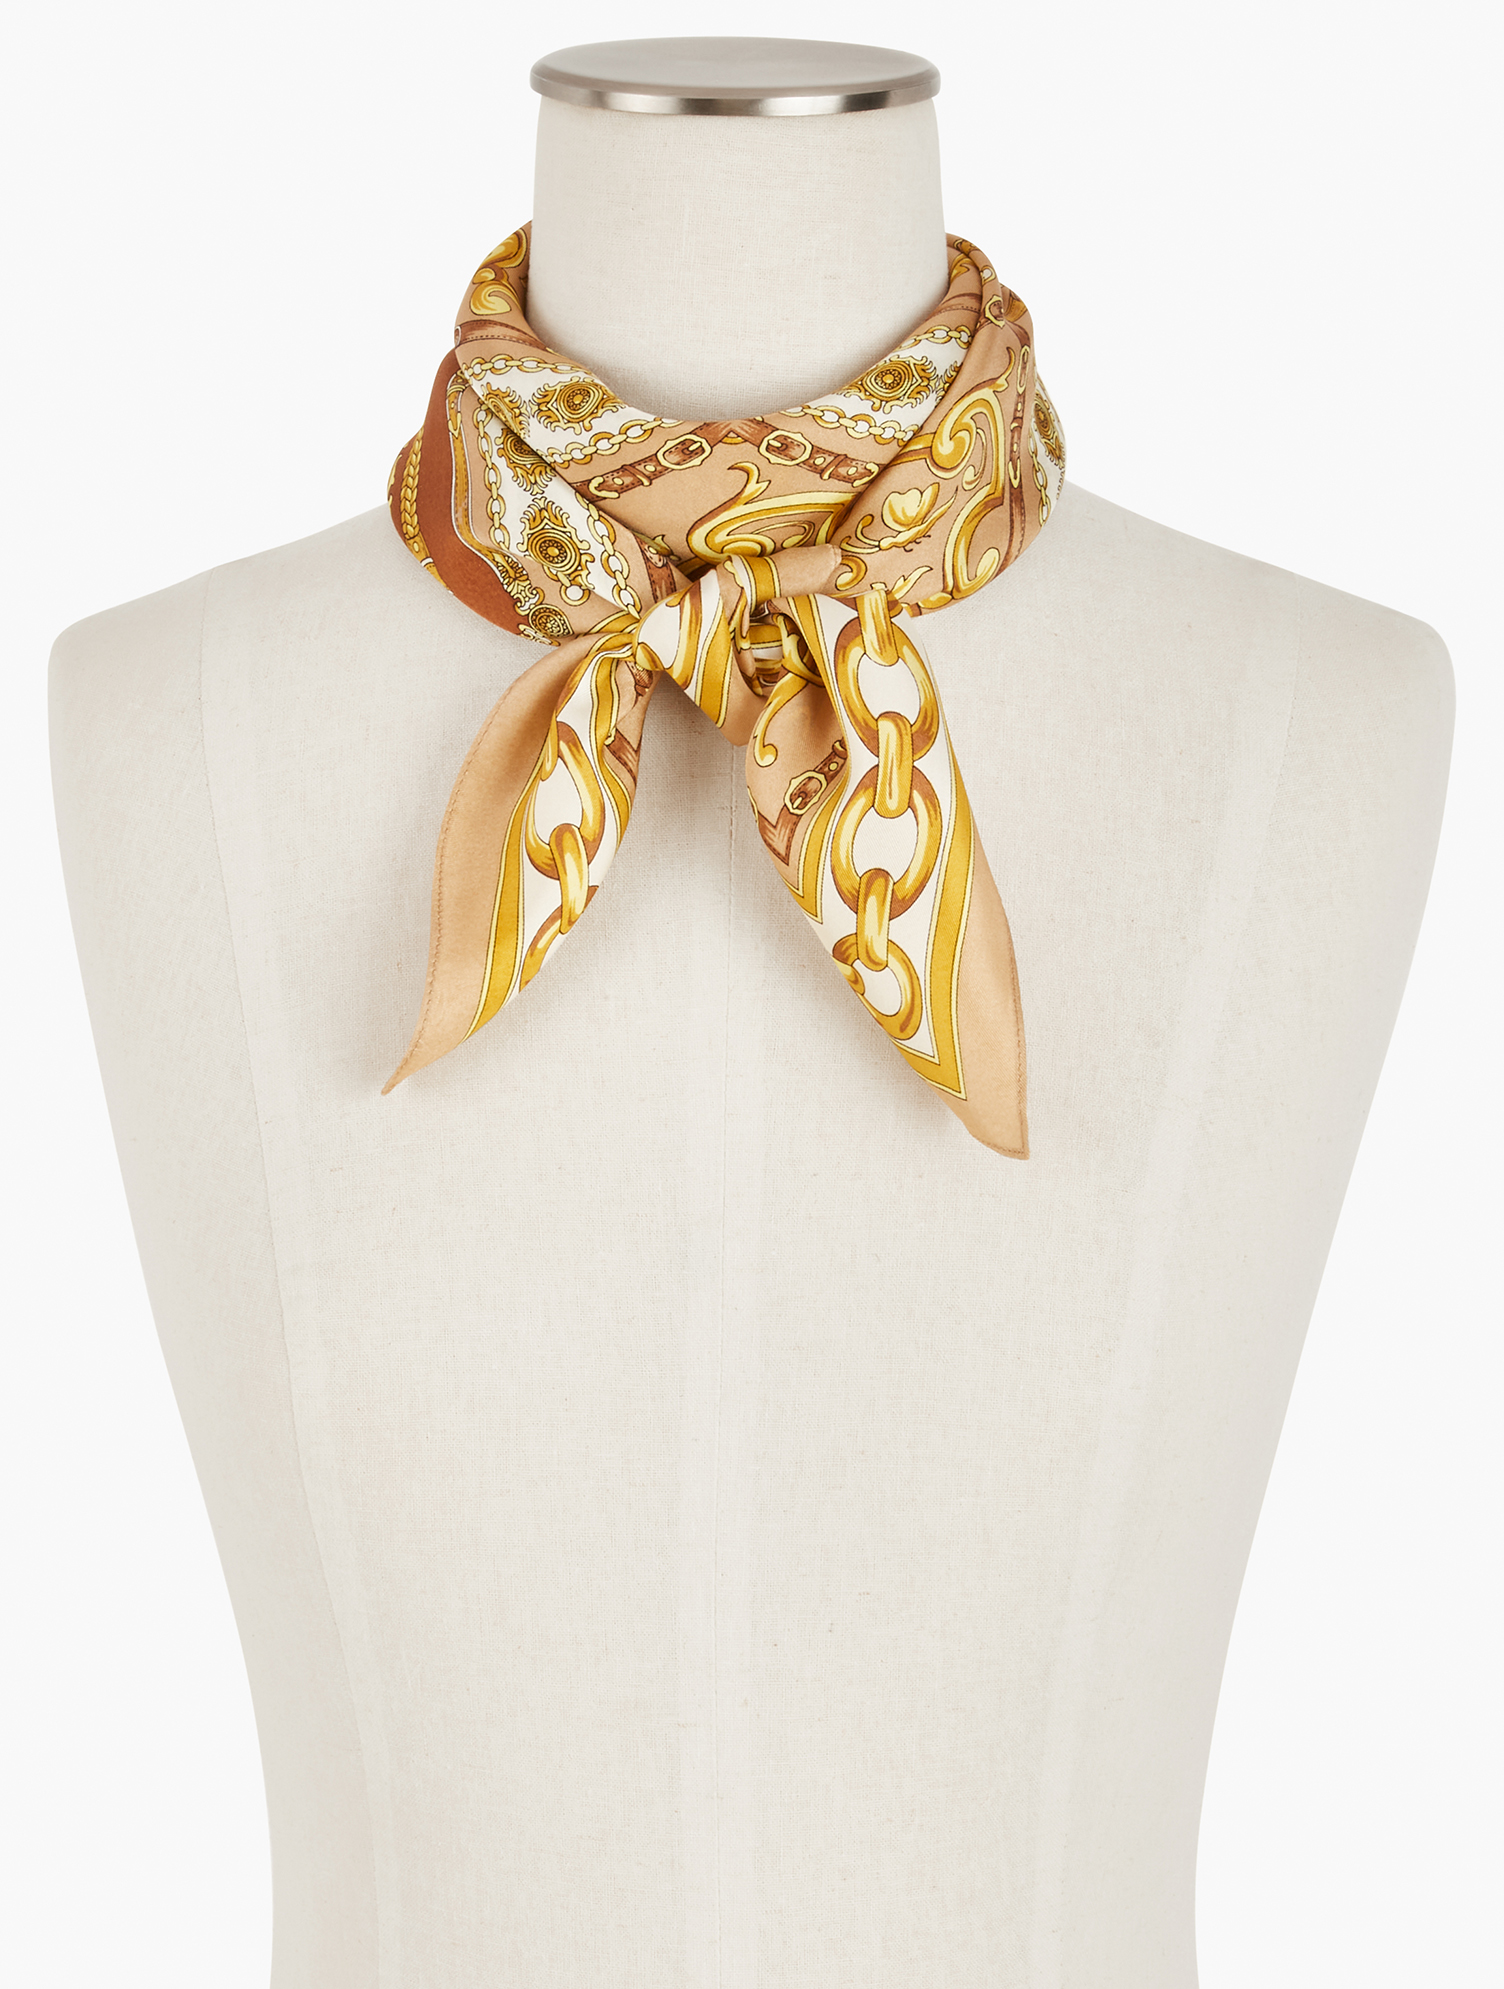 A perfect square of silk. Tie around your neck, hair, wrist, or favorite handbag. Features Square ScarfImported Fit: 34 inches x 34 inches Material: 100% Silk Care: Dry Clean Silk Square Status Scarf - Toasted Coconut - 001 Talbots